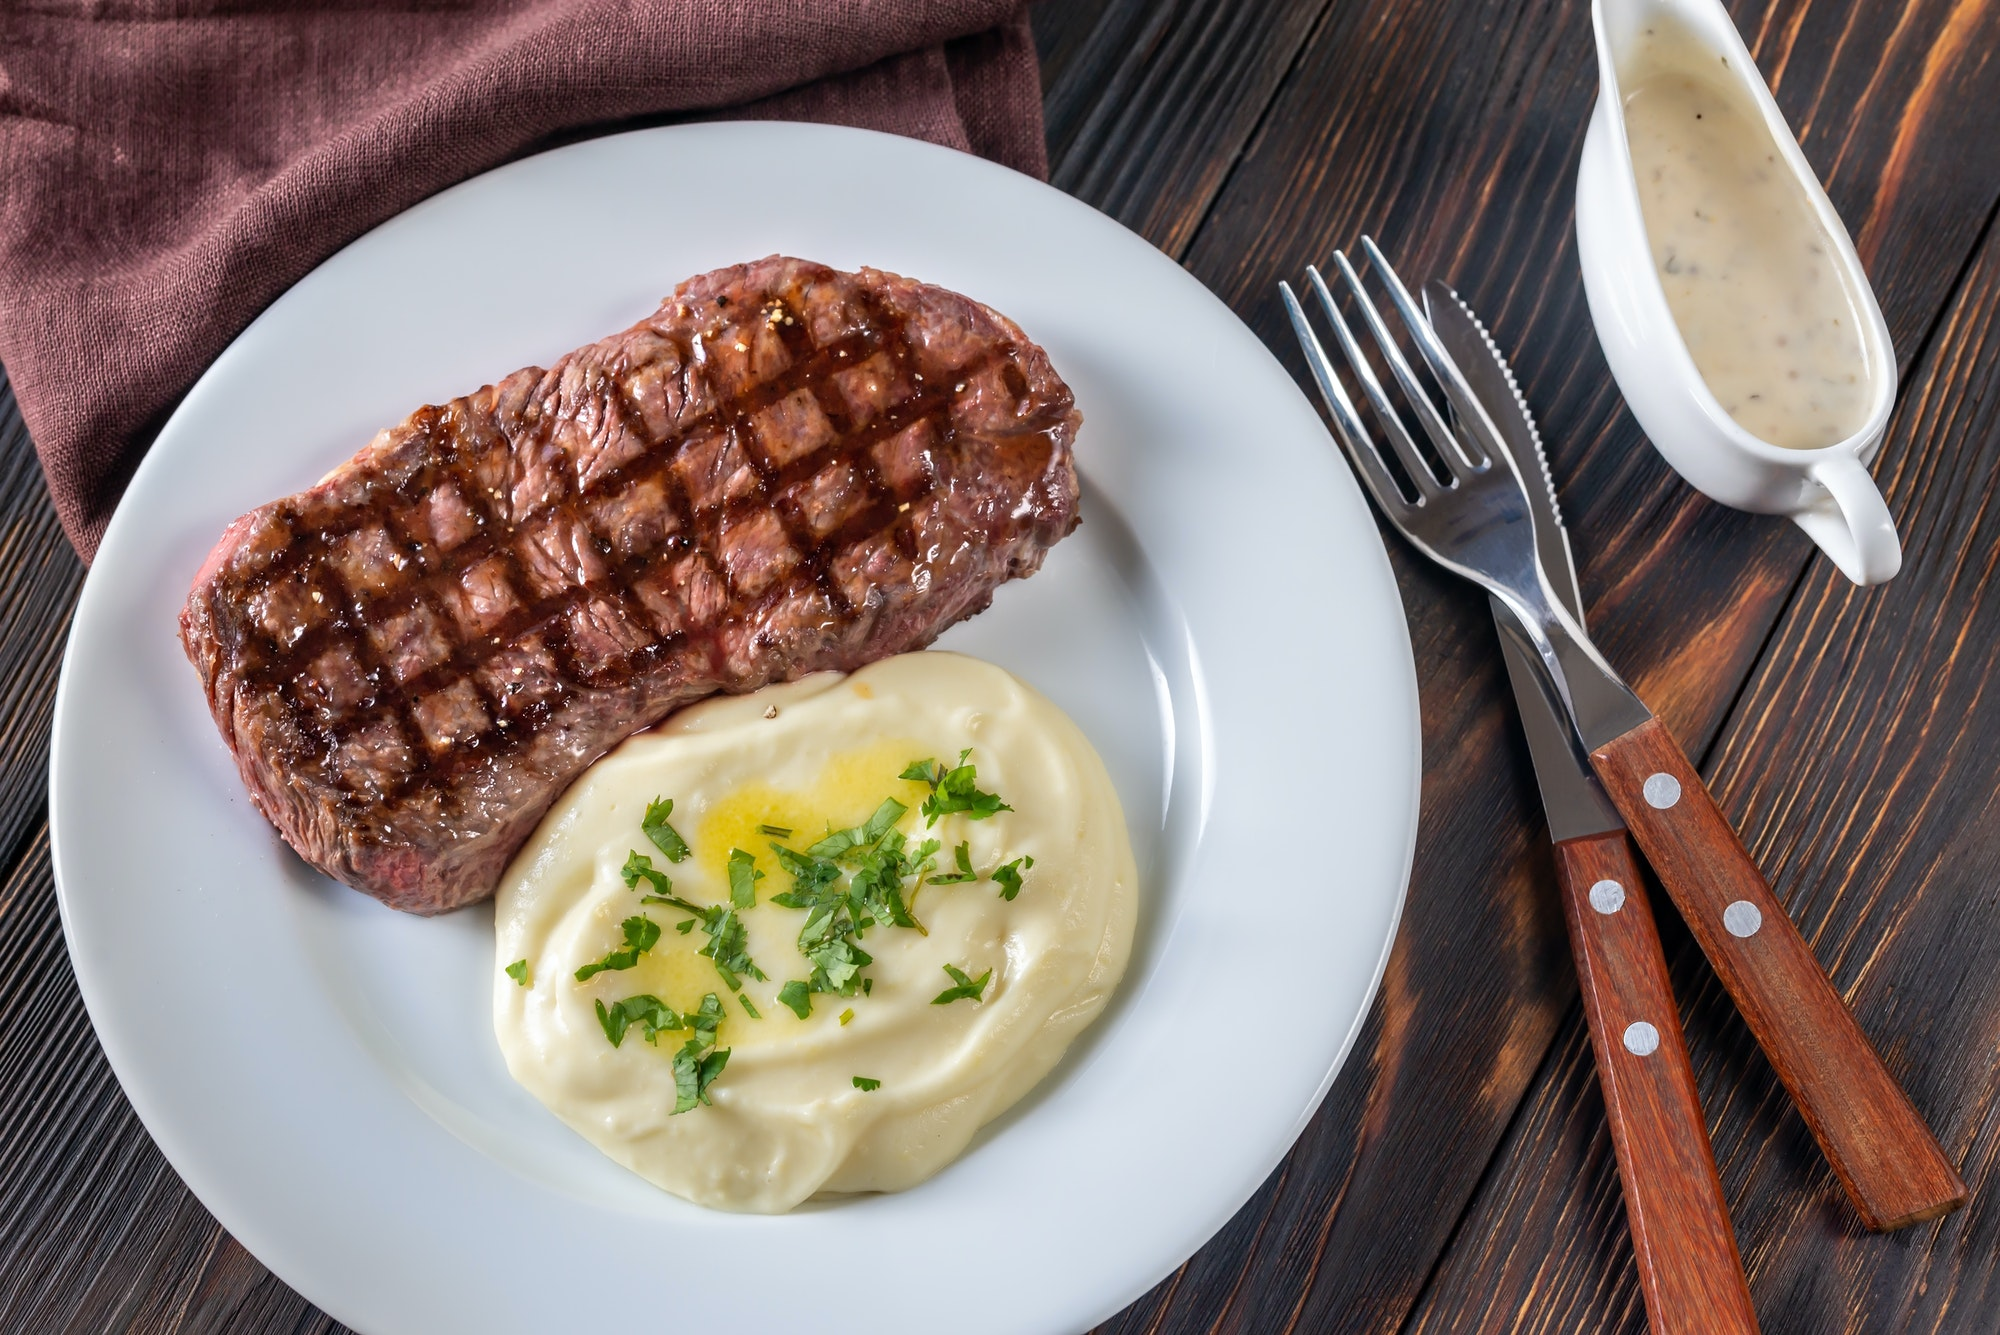 Strip steak with celery puree